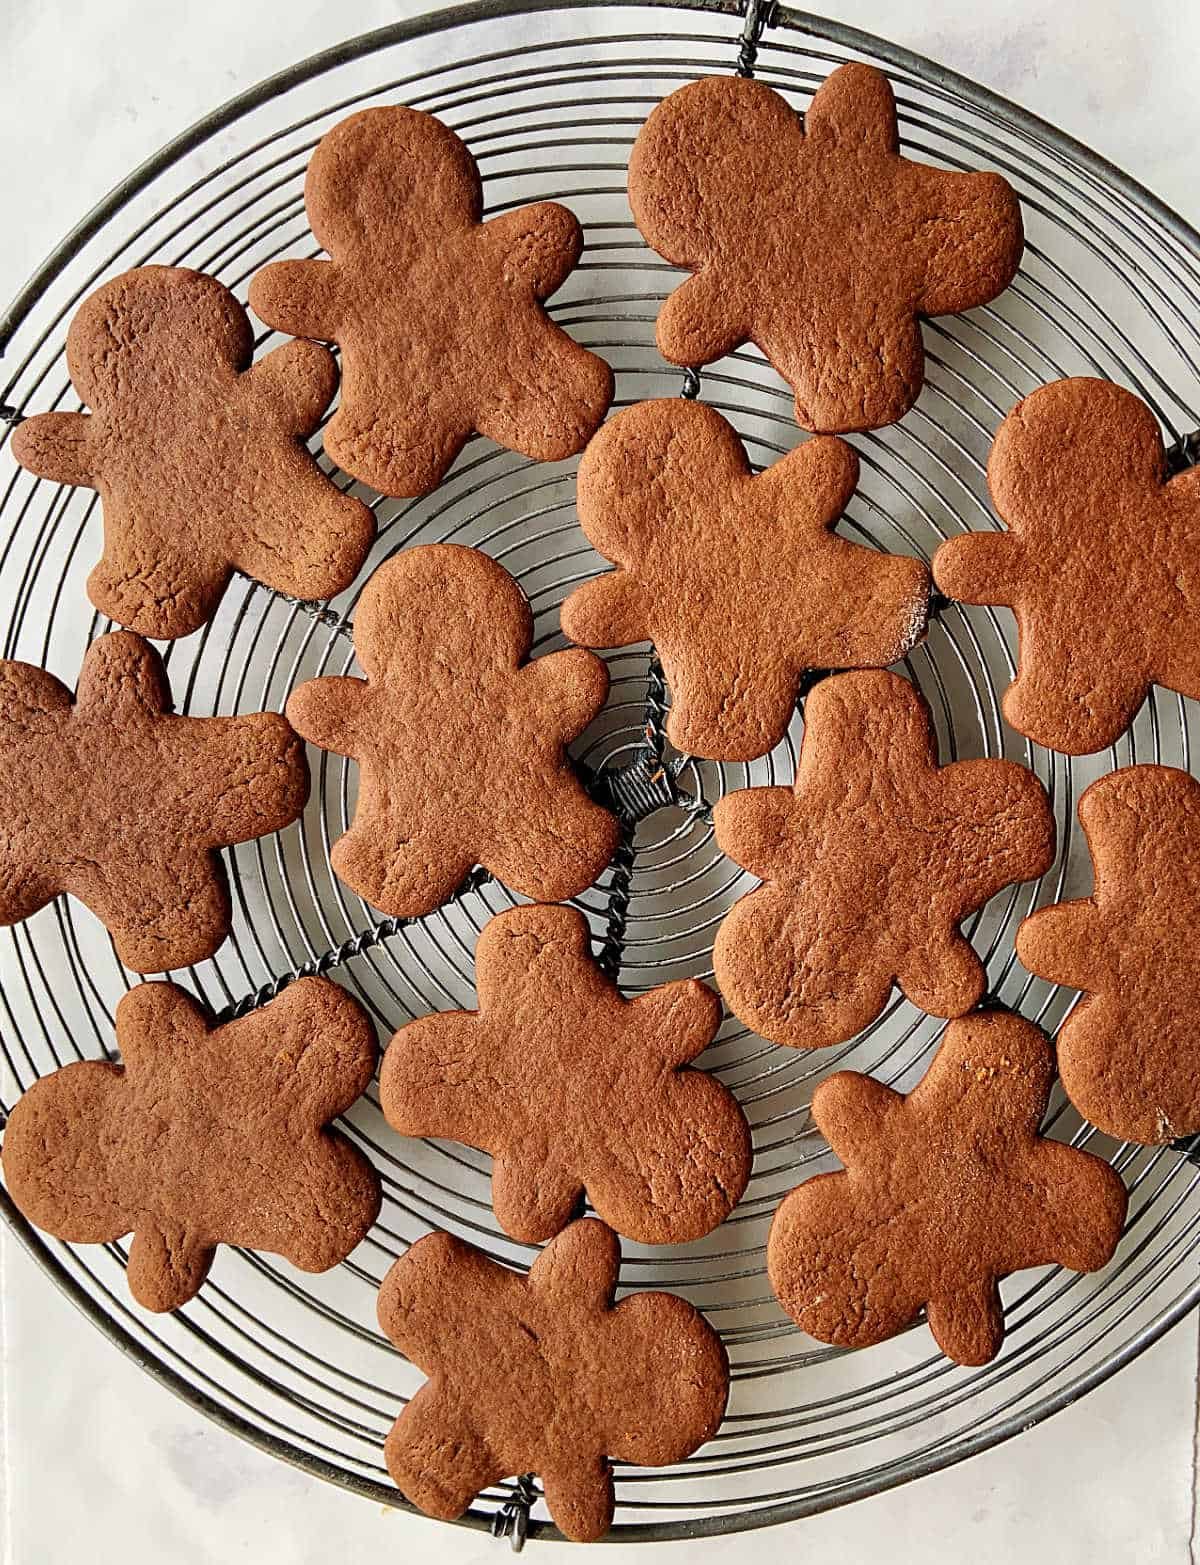 Plain gingerbread people cookies on a round wire rack, white surface